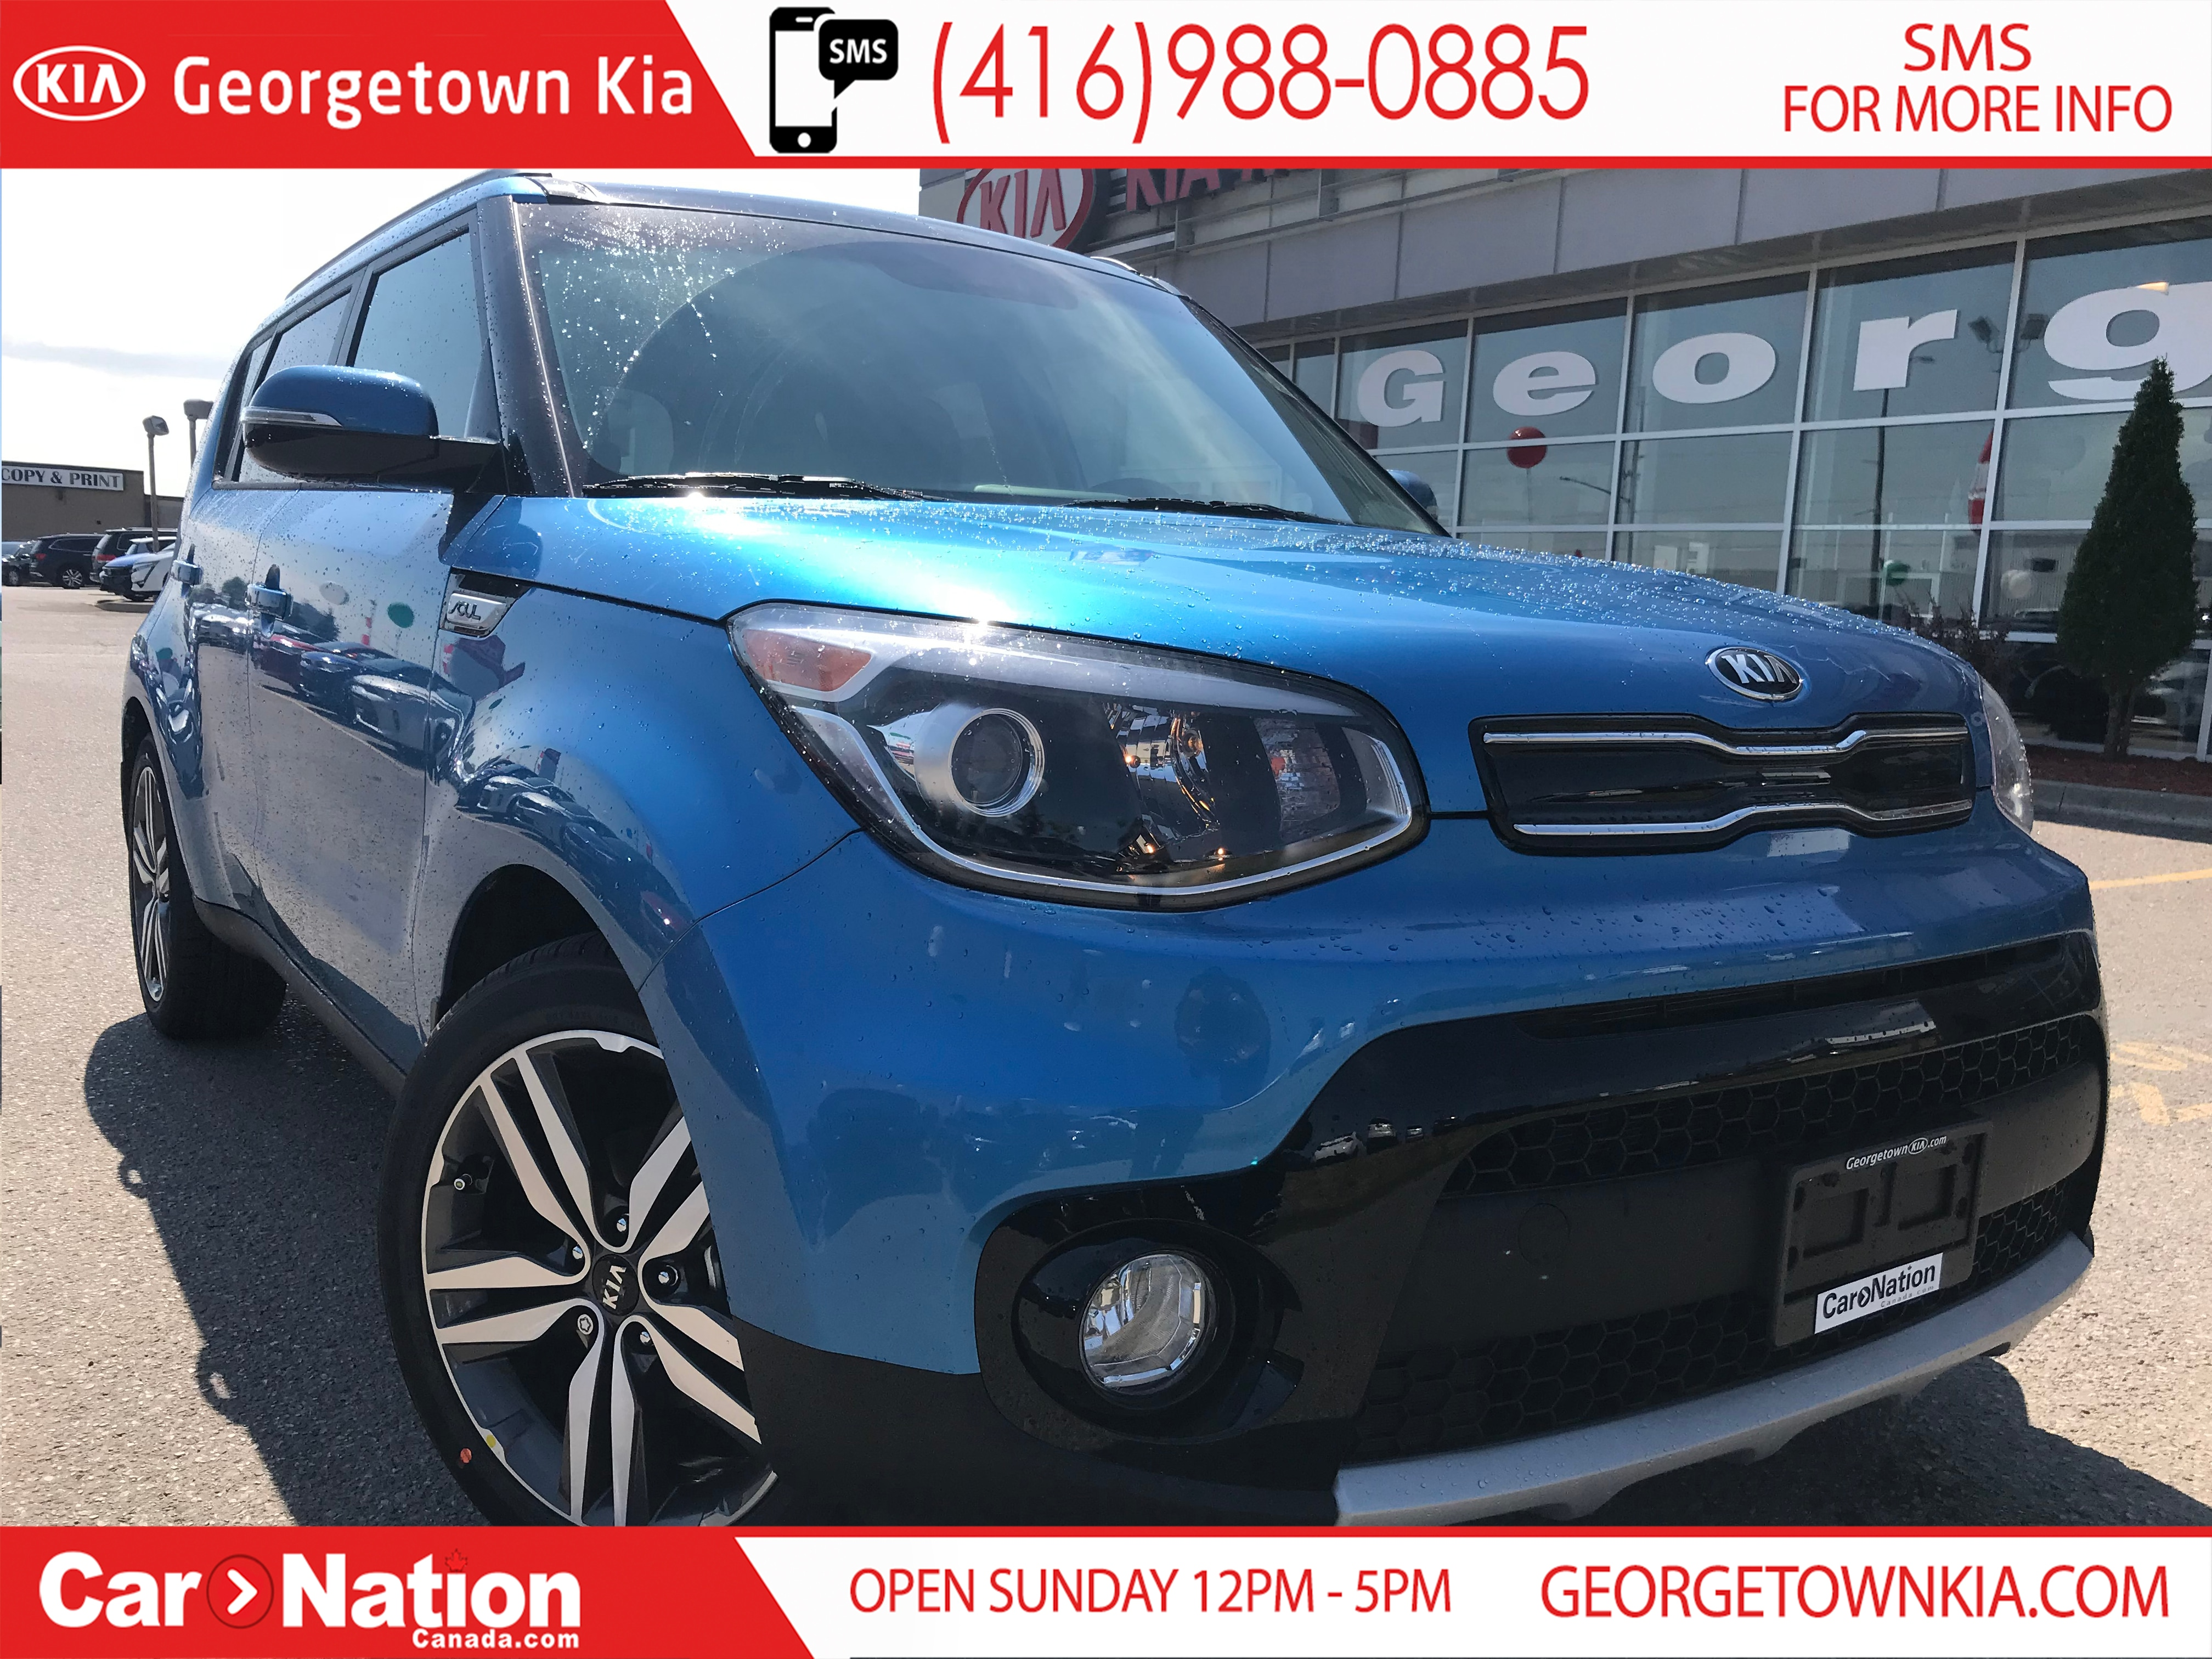 New Caribbean Blue 2019 Kia Soul For Sale | Georgetown KiaSO19003